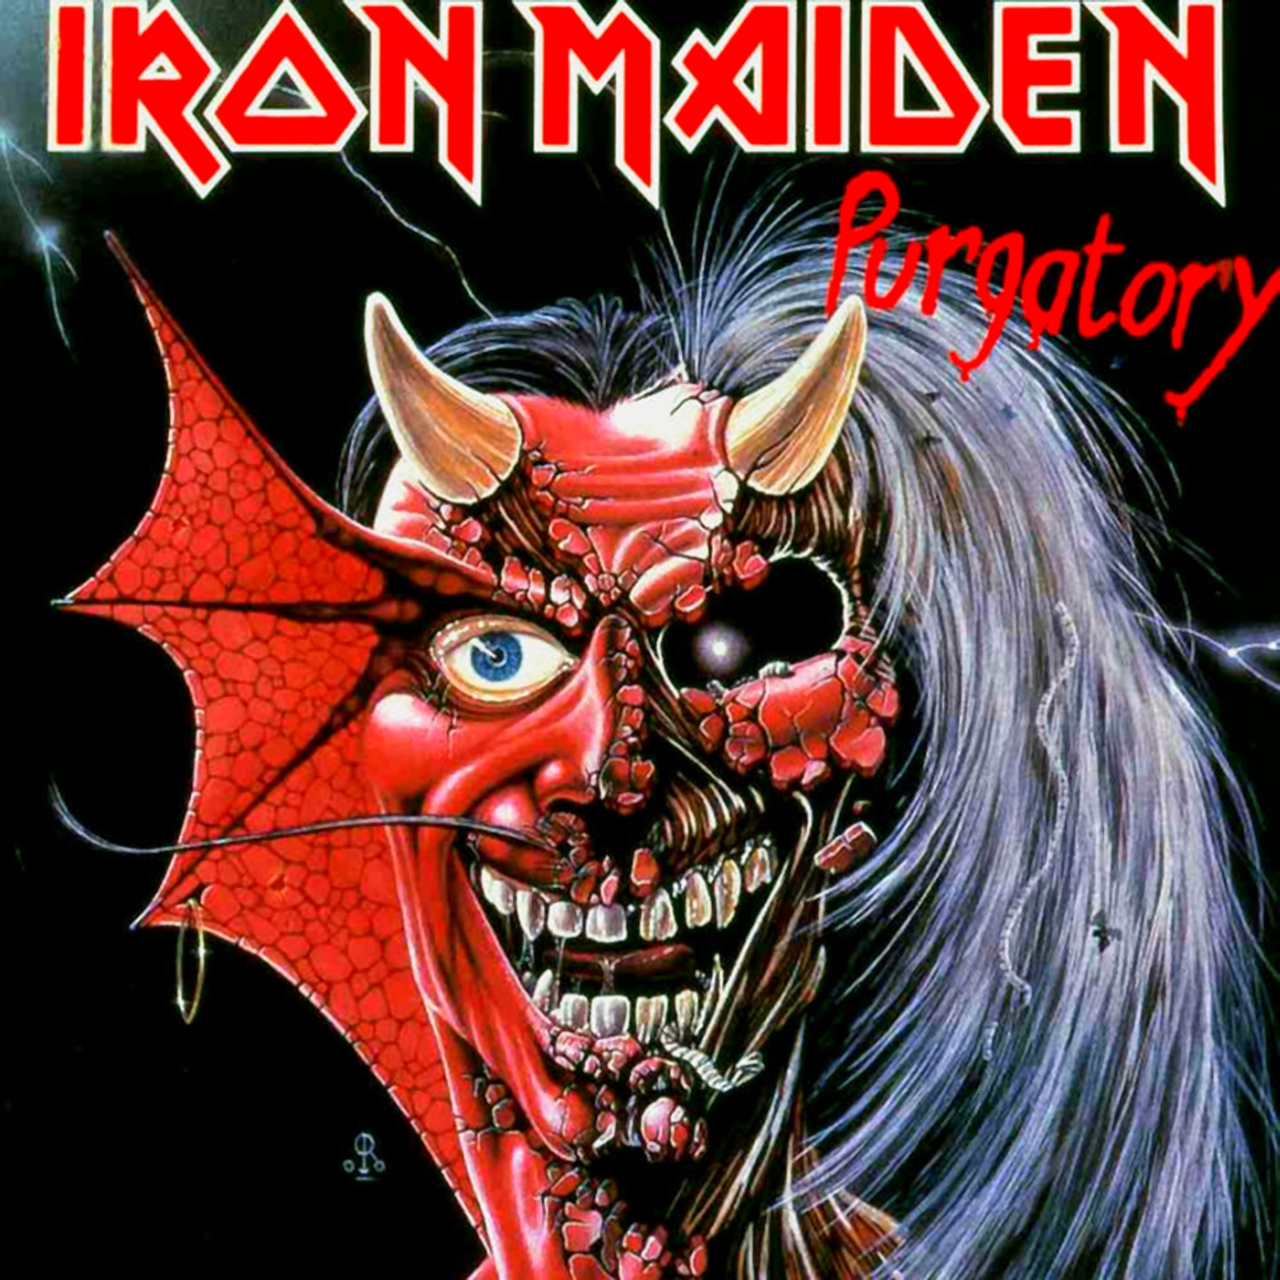 Iron Maiden Images Iron Maiden Hd Wallpaper And Background Photos